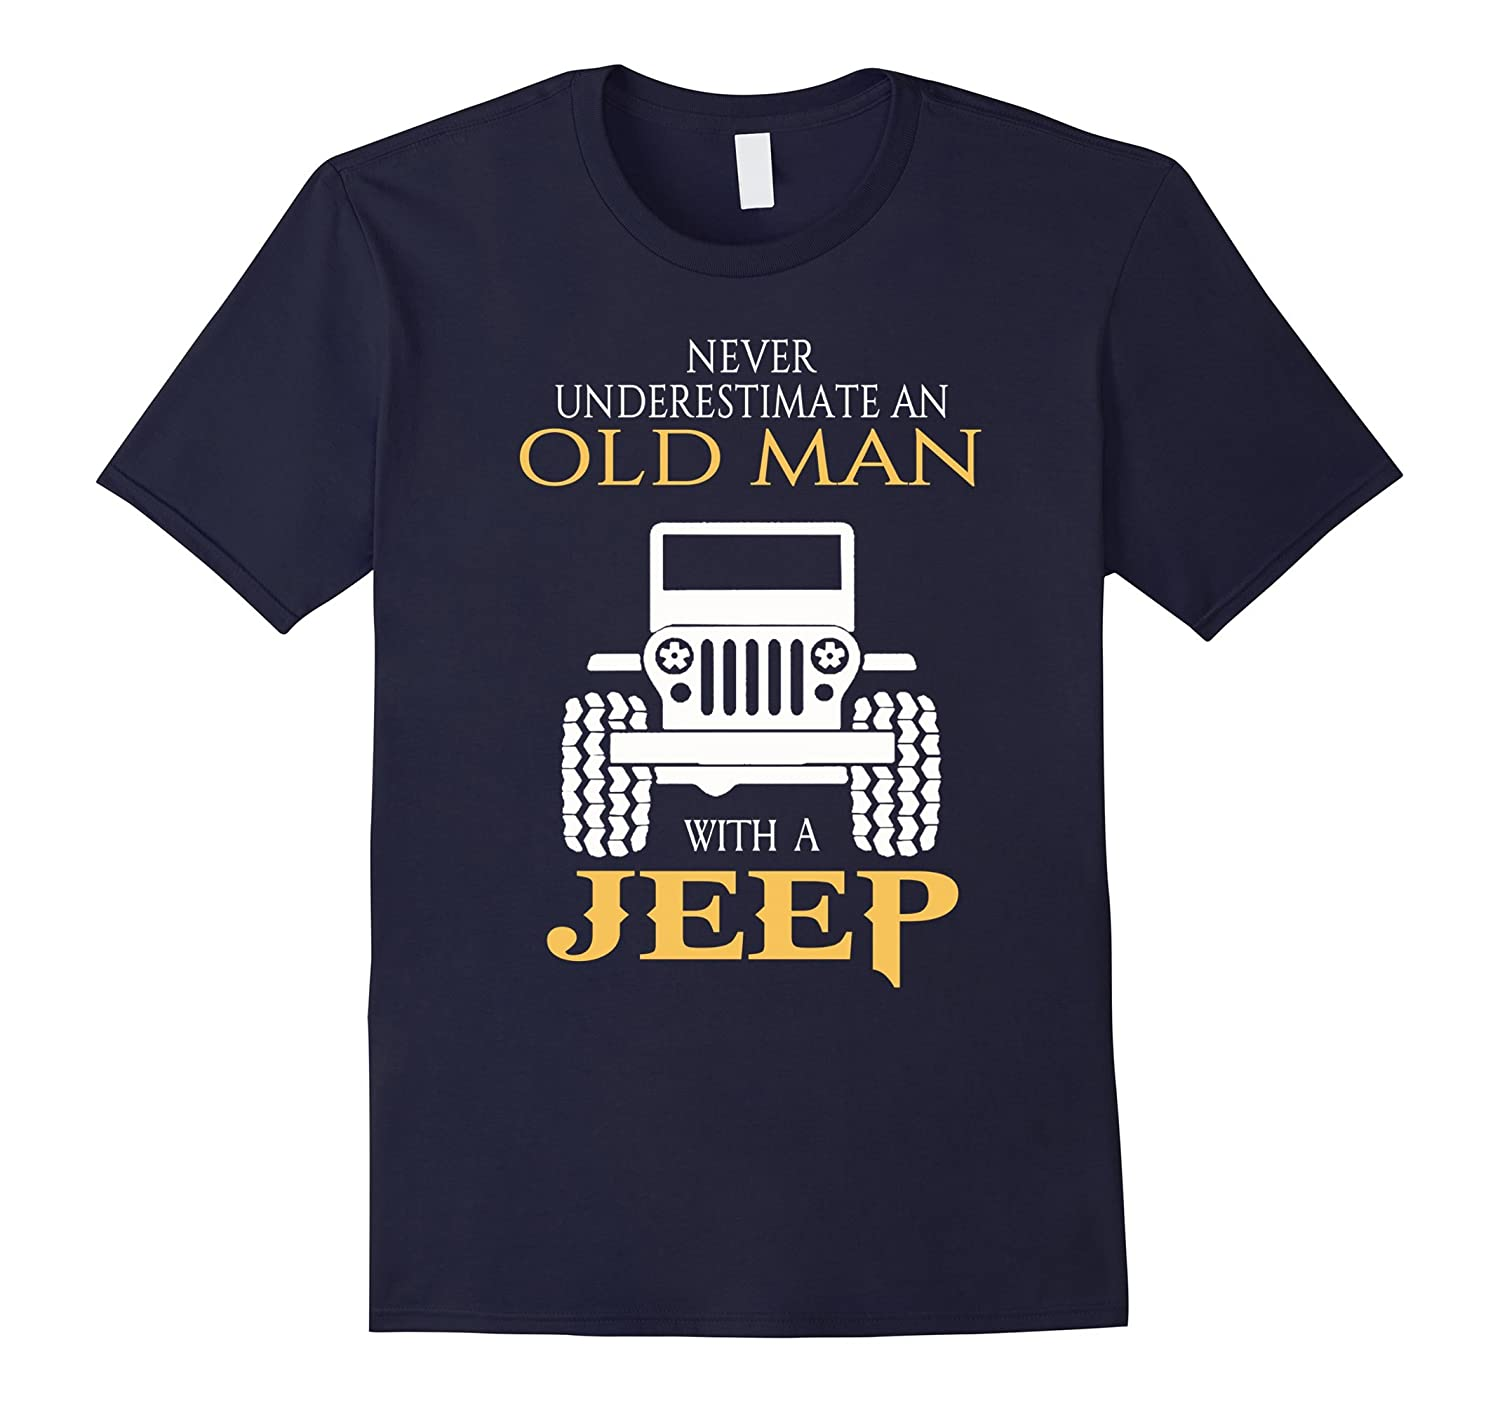 Never underestimate an old man with a jeep shirt-TD